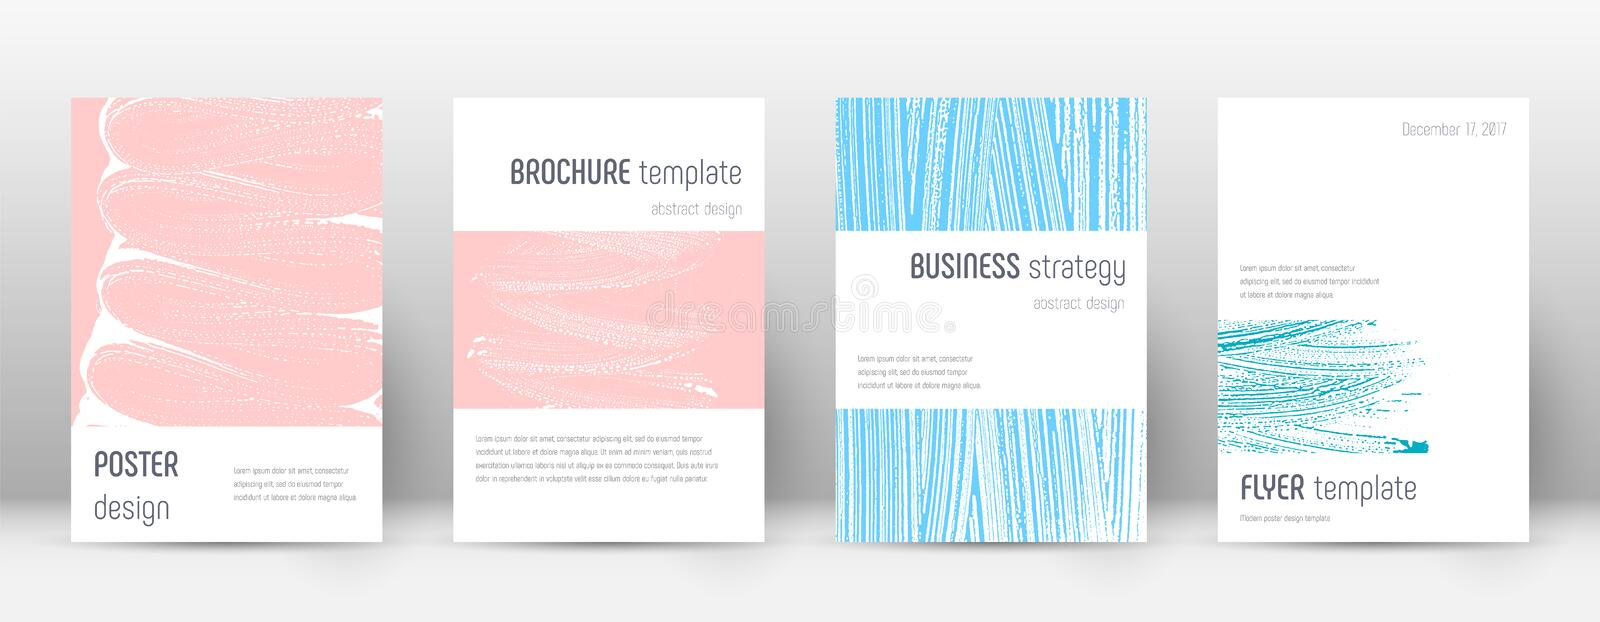 Cover page design template. Minimalistic brochure. Layout. Classy trendy abstract cover page. Pink and blue grunge texture background. Stunning poster stock illustration